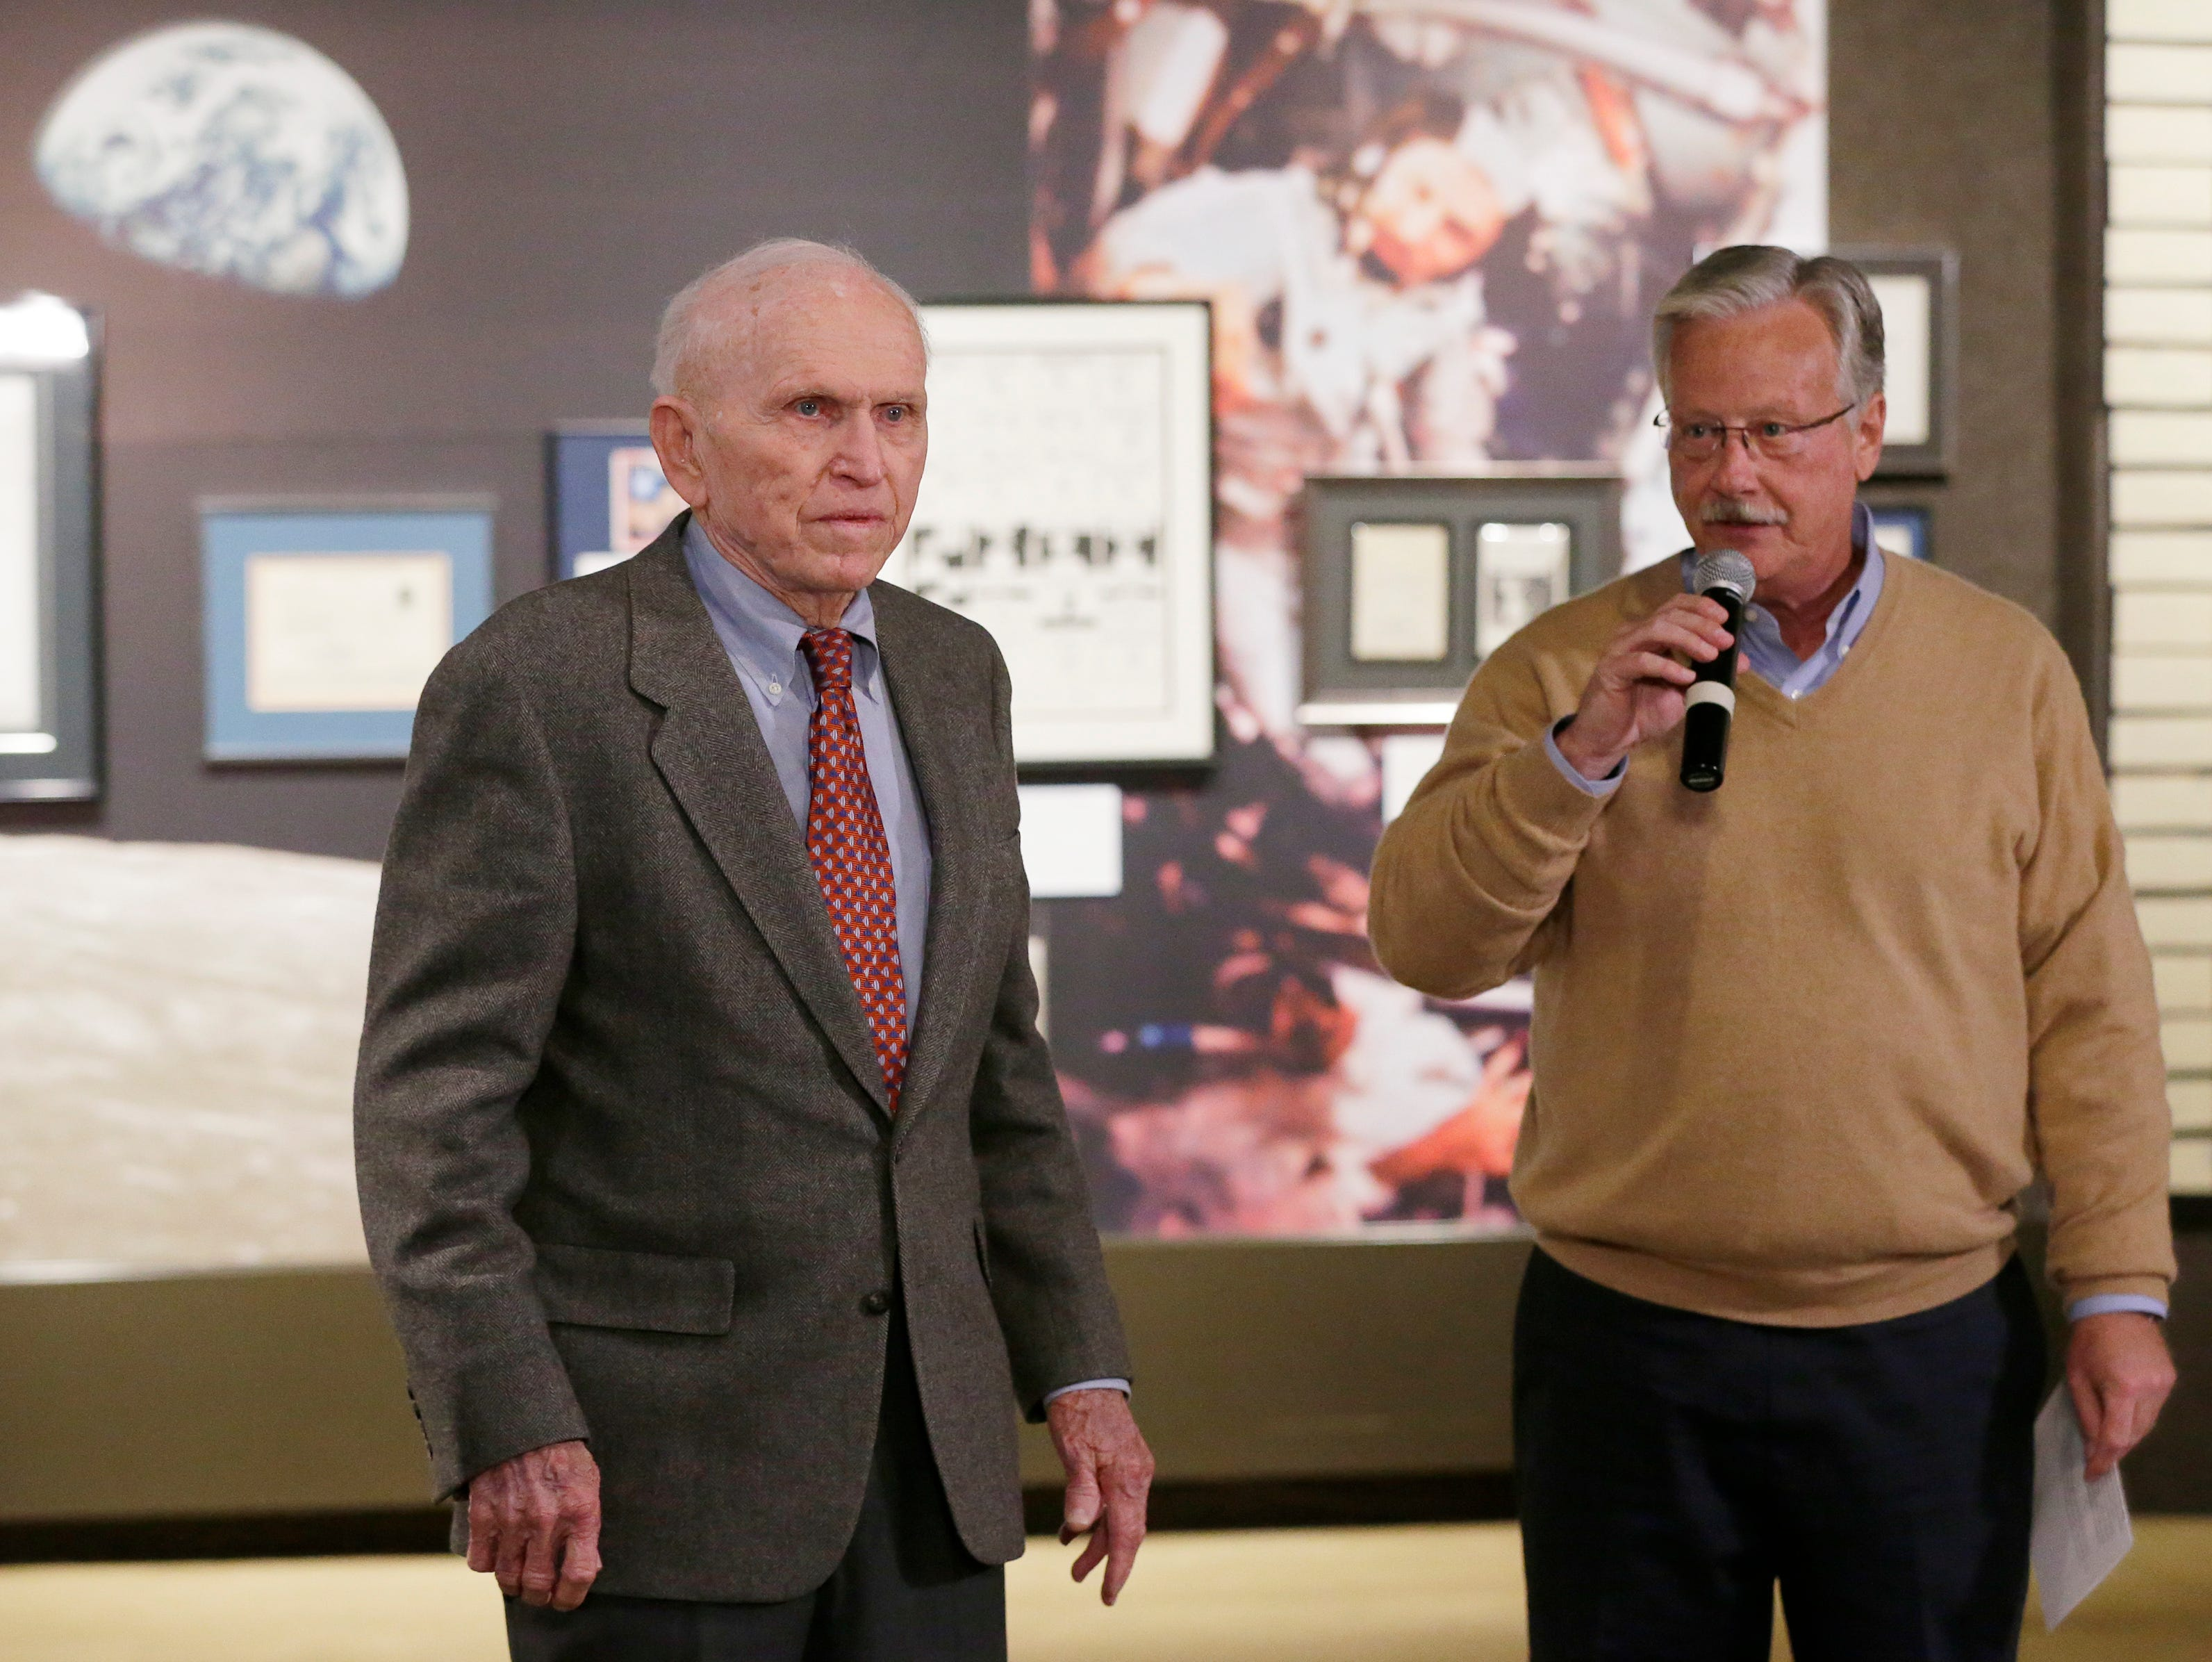 """Astronaut Frank Norman and EAA CEO/Chairman Jack Pelton talk before the opening of the exhibit.  The EAA Aviation Museum in Oshkosh, Wis. has opened """"The Borman Collection: An EAA Member's Space Odyssey,"""" an exhibit that features the personal archives and memorabilia of astronaut Frank Borman, who was on the leading edge of America's space program through the 1960s. The new exhibit was formally opened with a ribbon cutting by Borman on Friday, December 7, 2018.Joe Sienkiewicz/USA Today NETWORK-Wisconsin"""